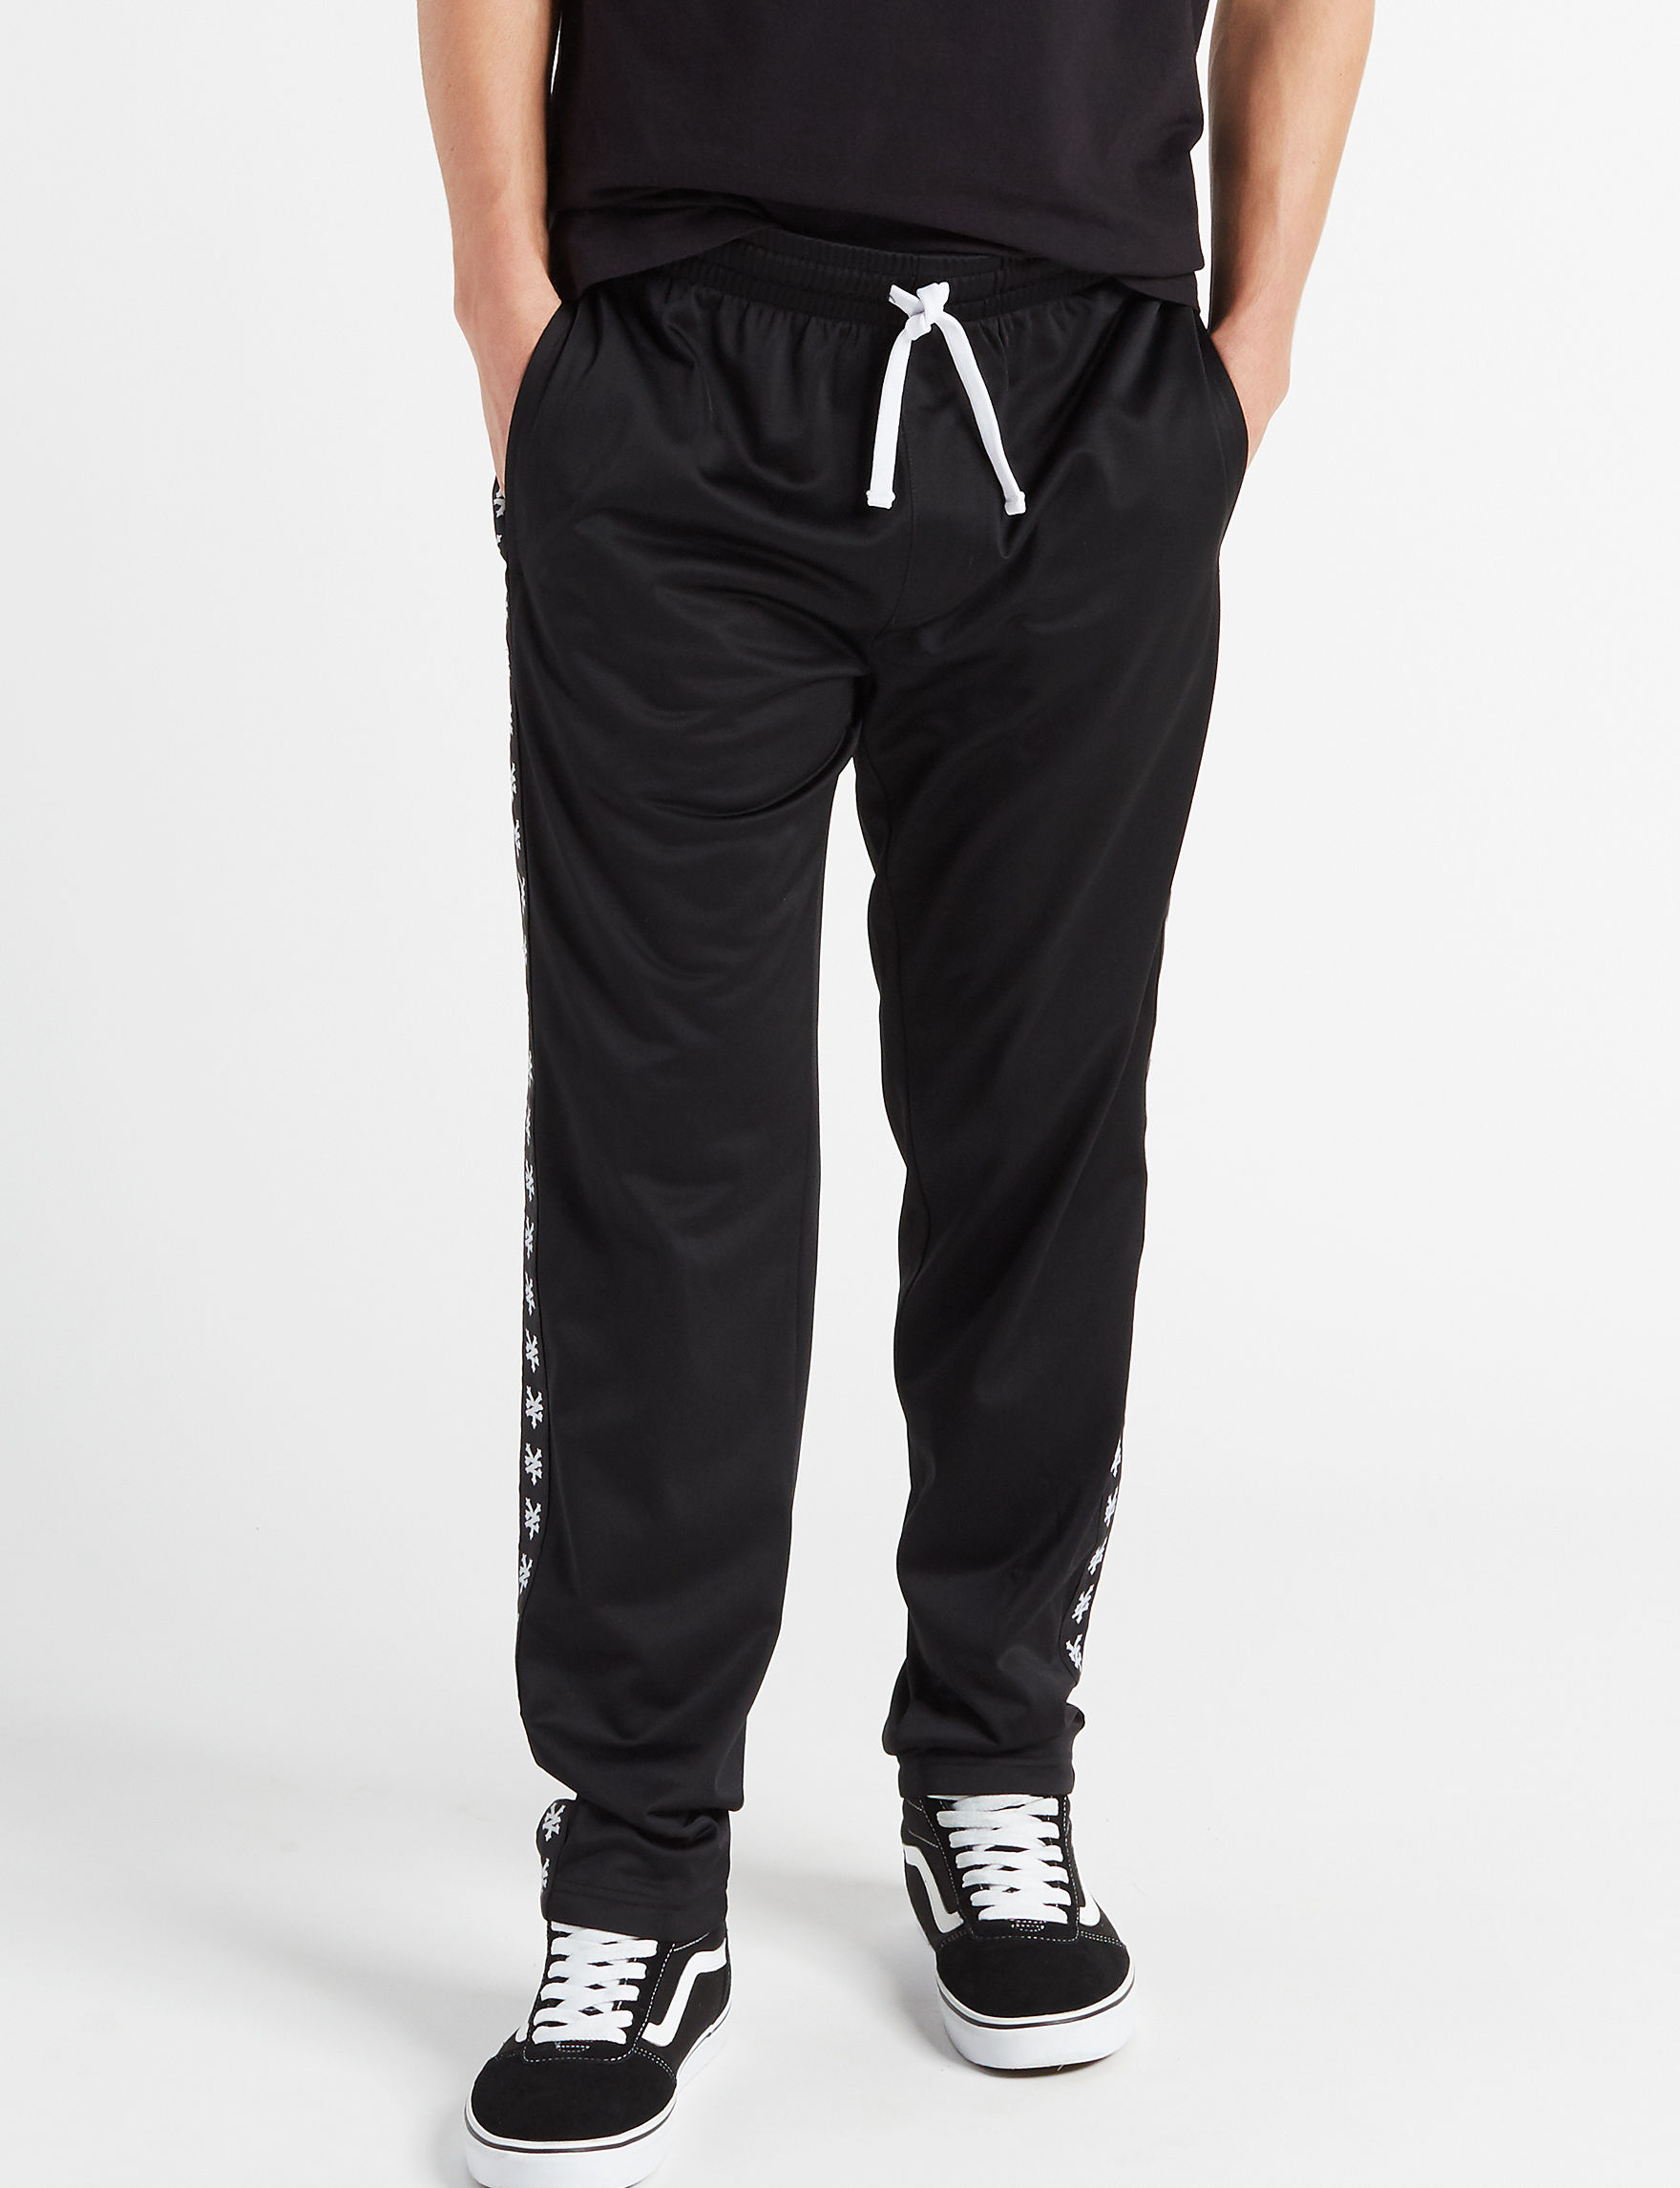 Zoo York Black / White Jogger